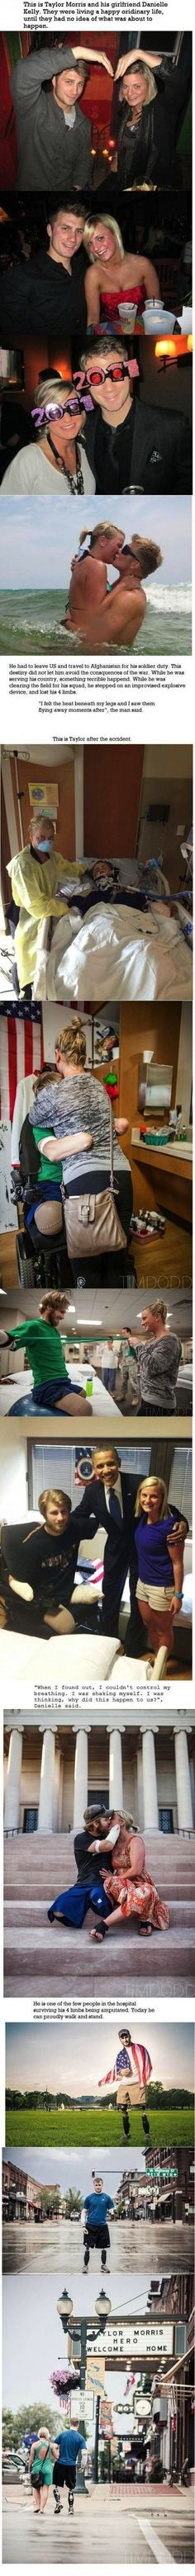 This brought tears to my eyes. God bless the man, and the woman that supported him through it. And most of all, God bless our troops.